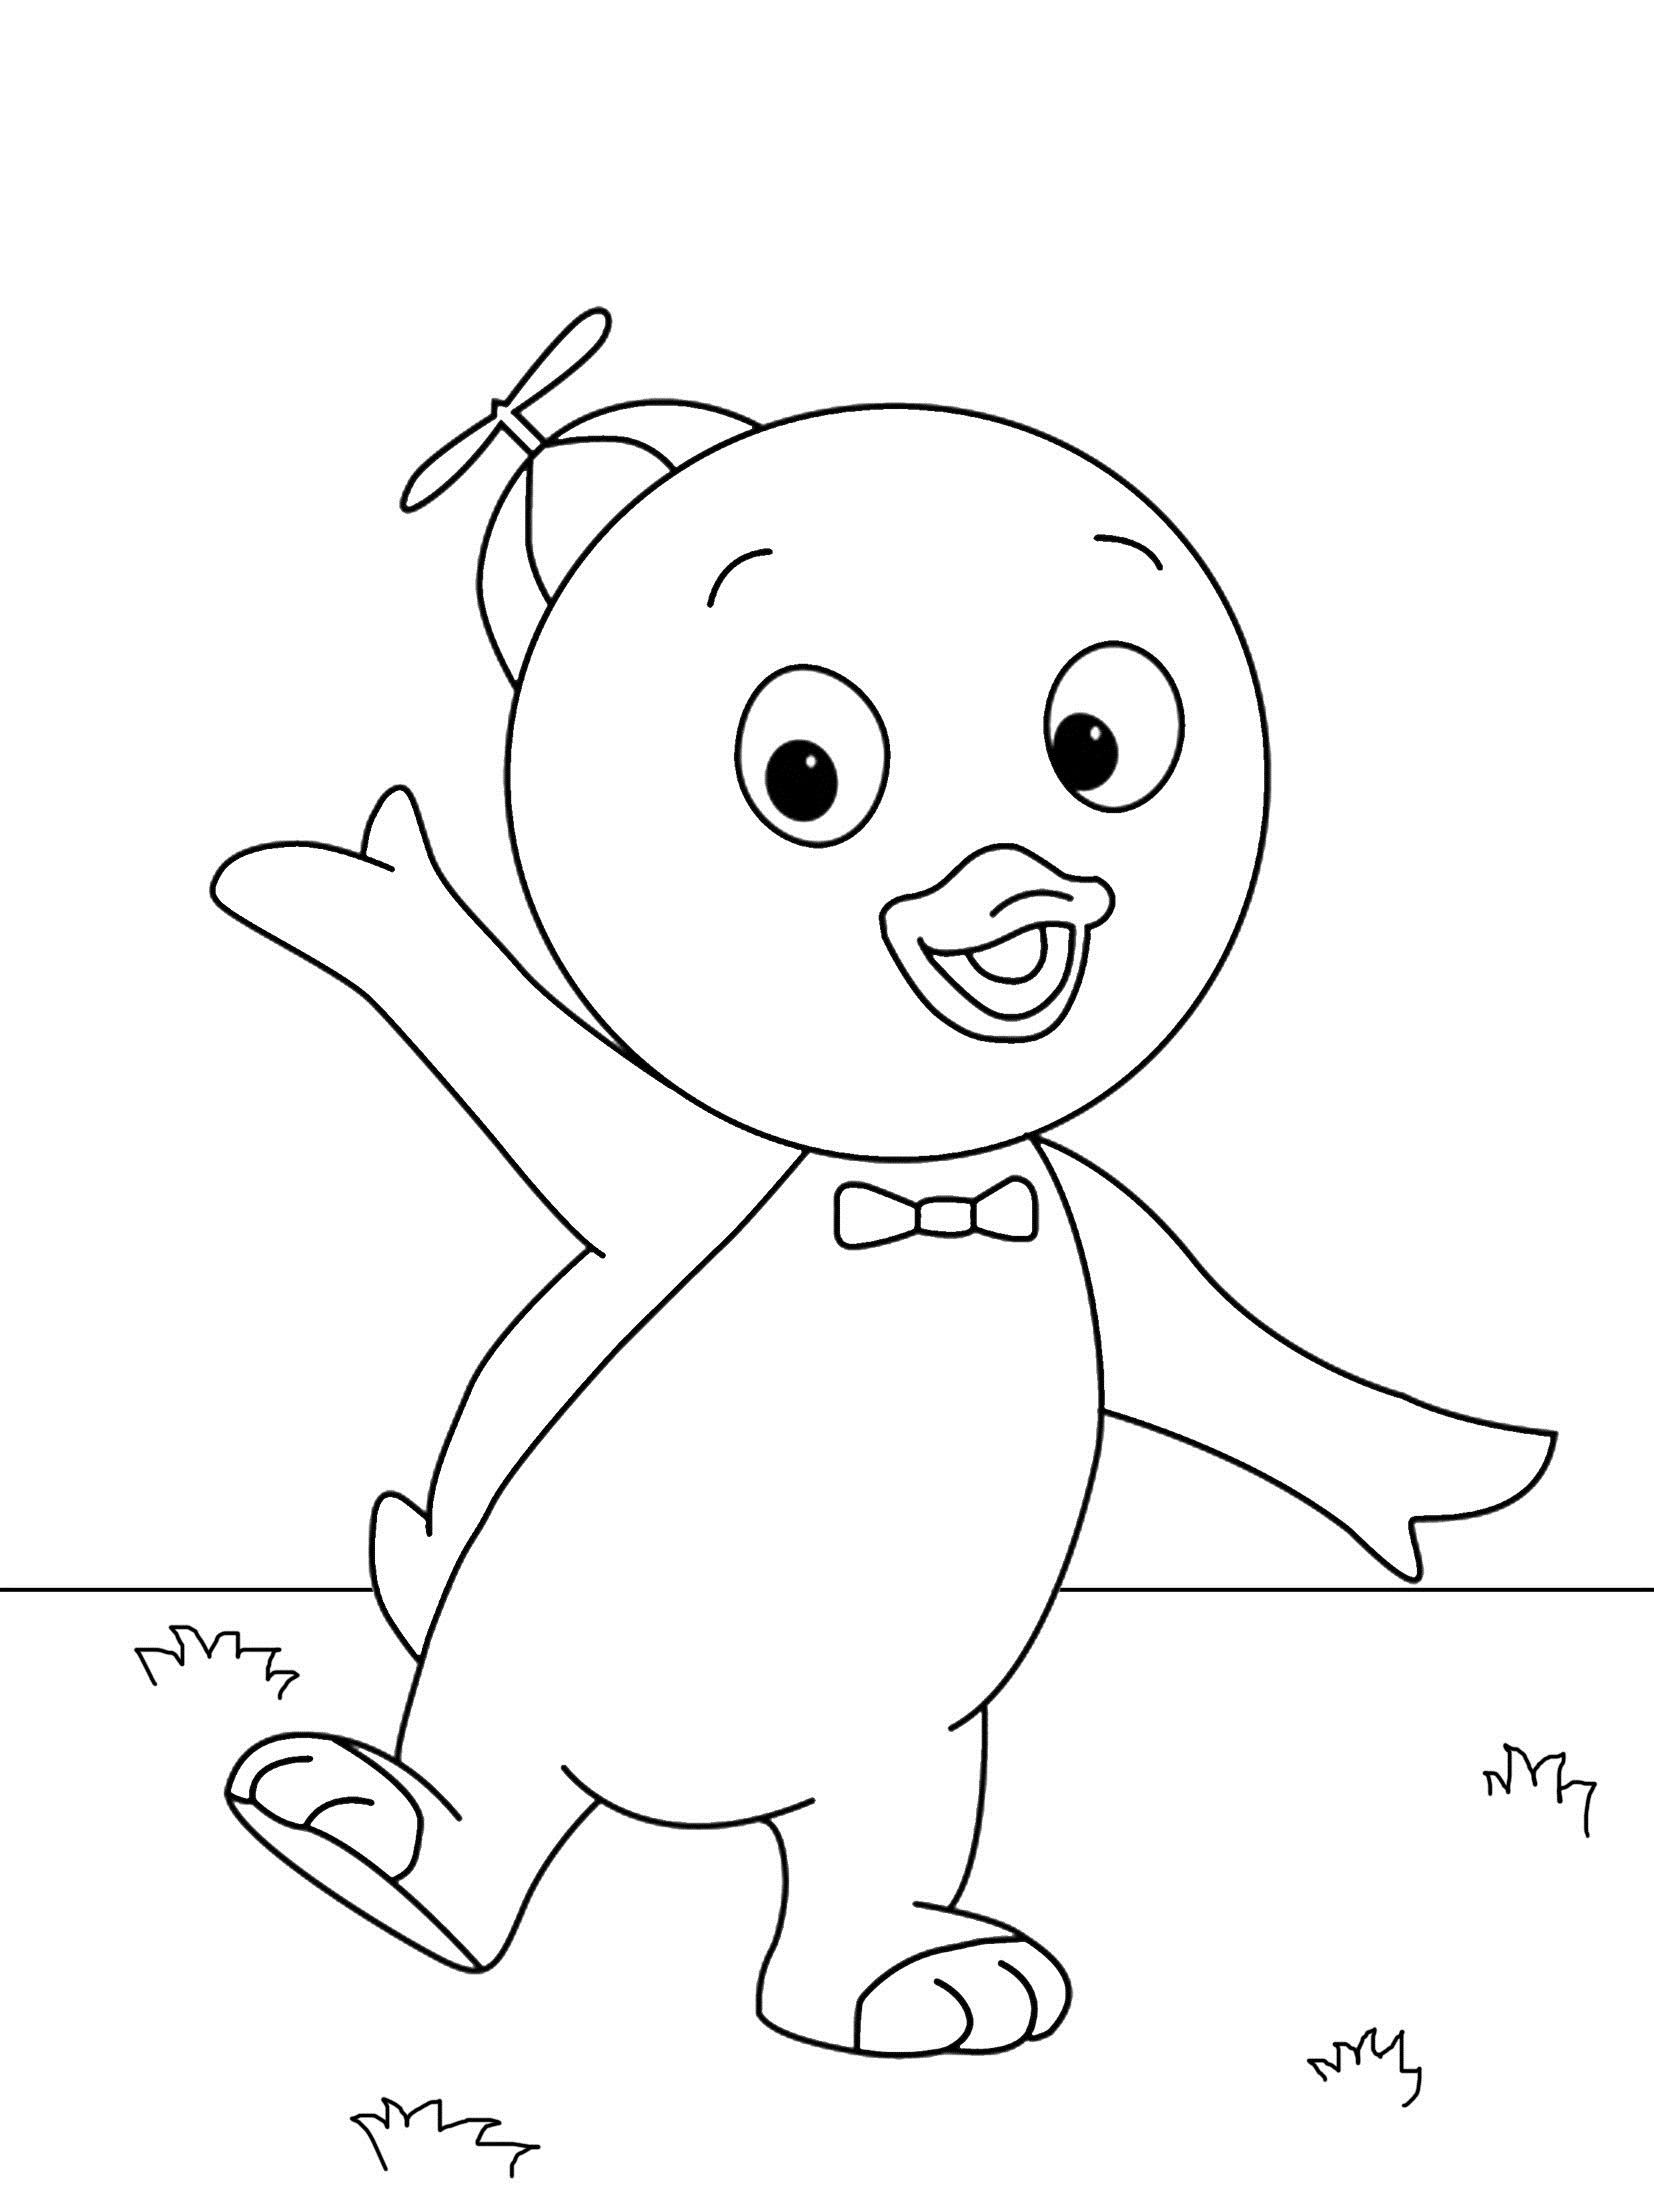 backyardagins printable coloring pages - photo#19